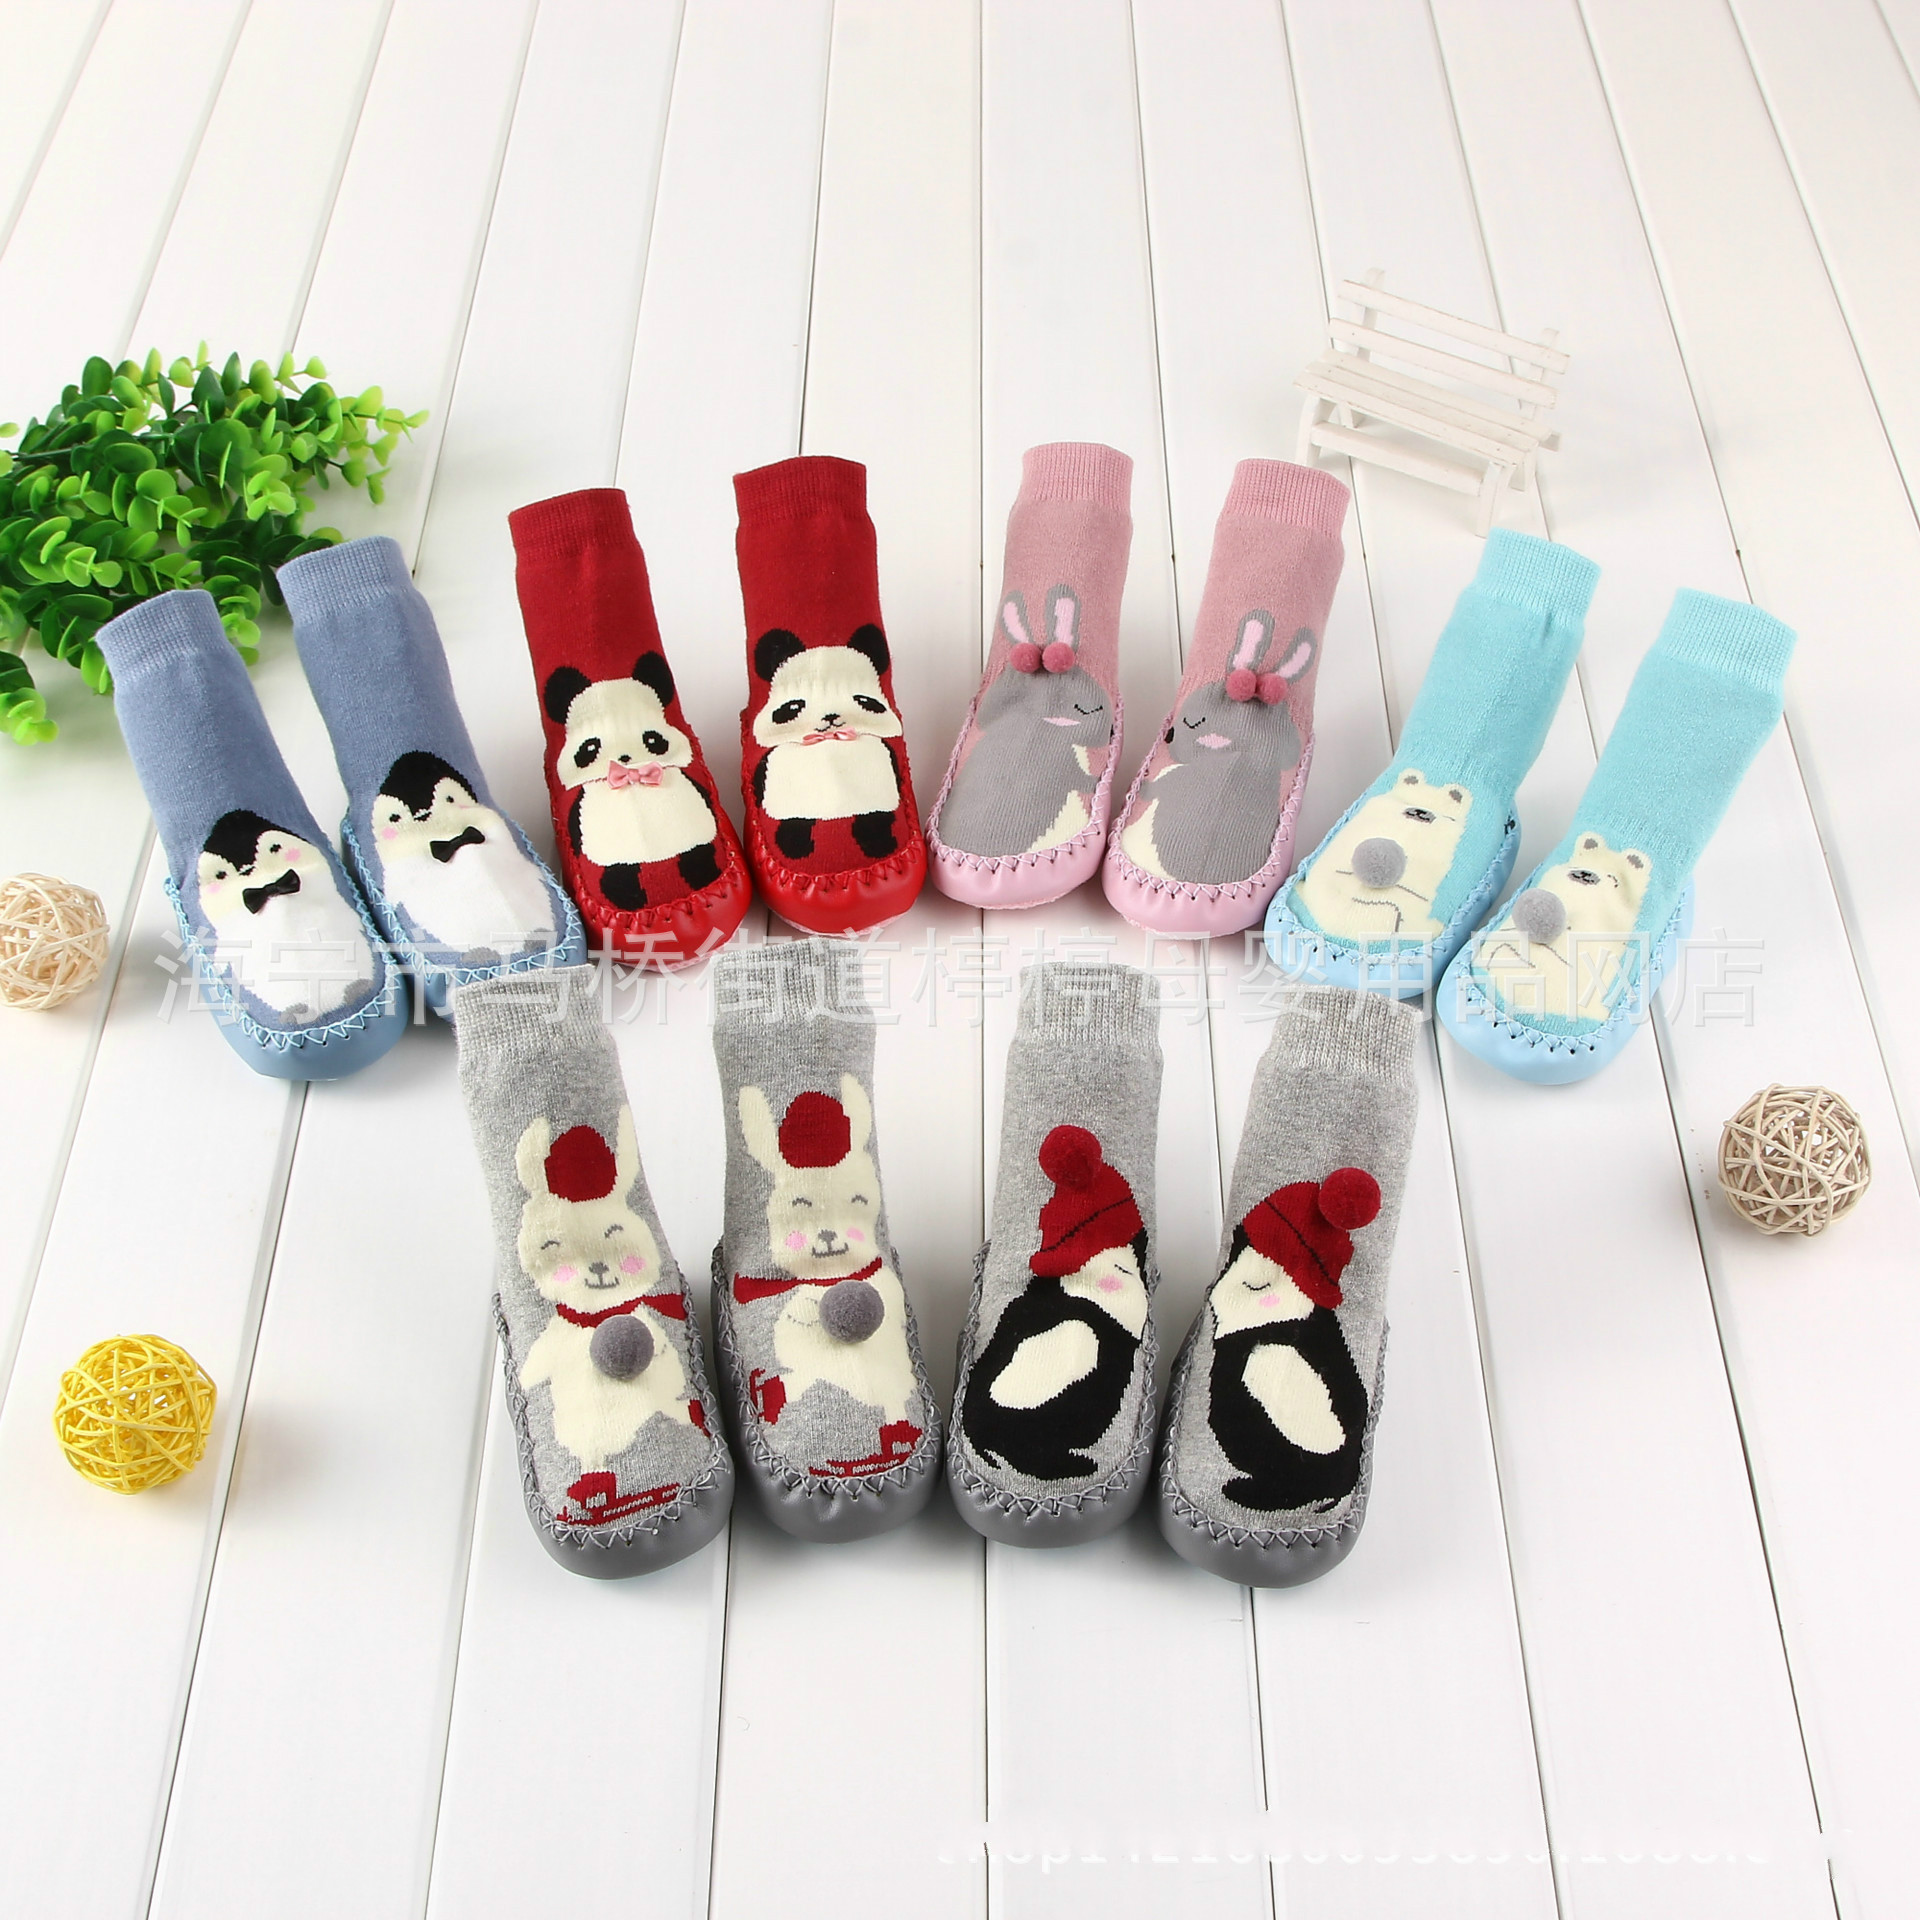 1pairs Baby Socks With Non-slip Soles Soft Floor Sock Leg Warmers Bear Toddler Shoes Sock Cotton Rabbit Panda Animal Design First Walkers Baby Shoes